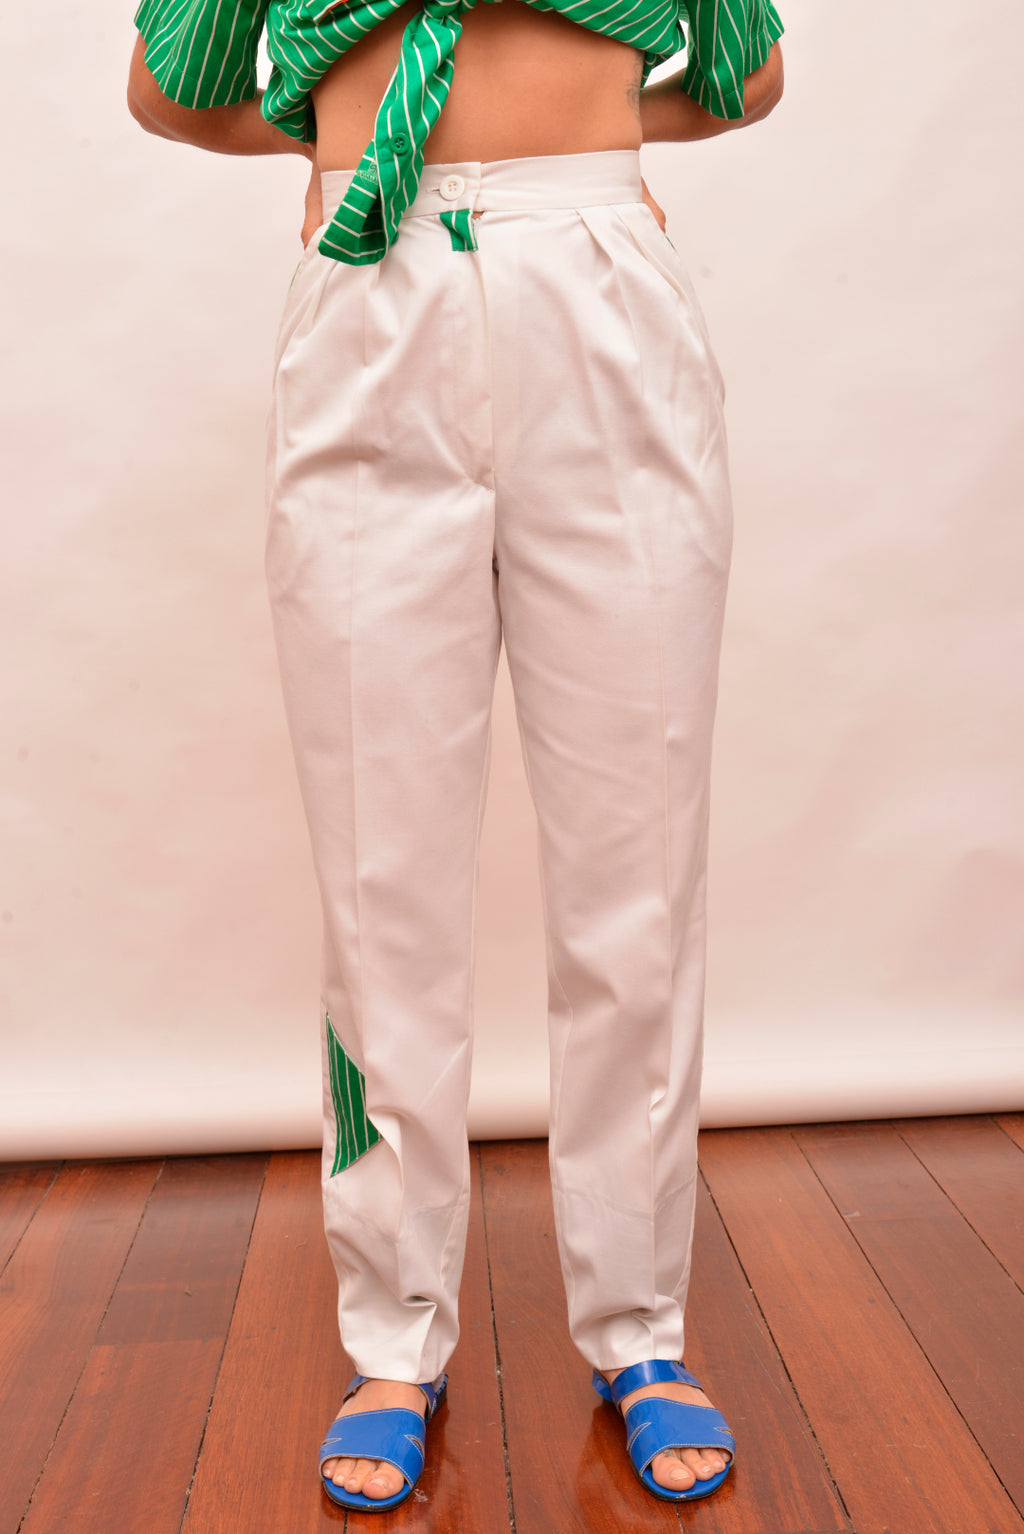 Vintage Walter Kristensen White High Waisted Pants (S) - Mercado32